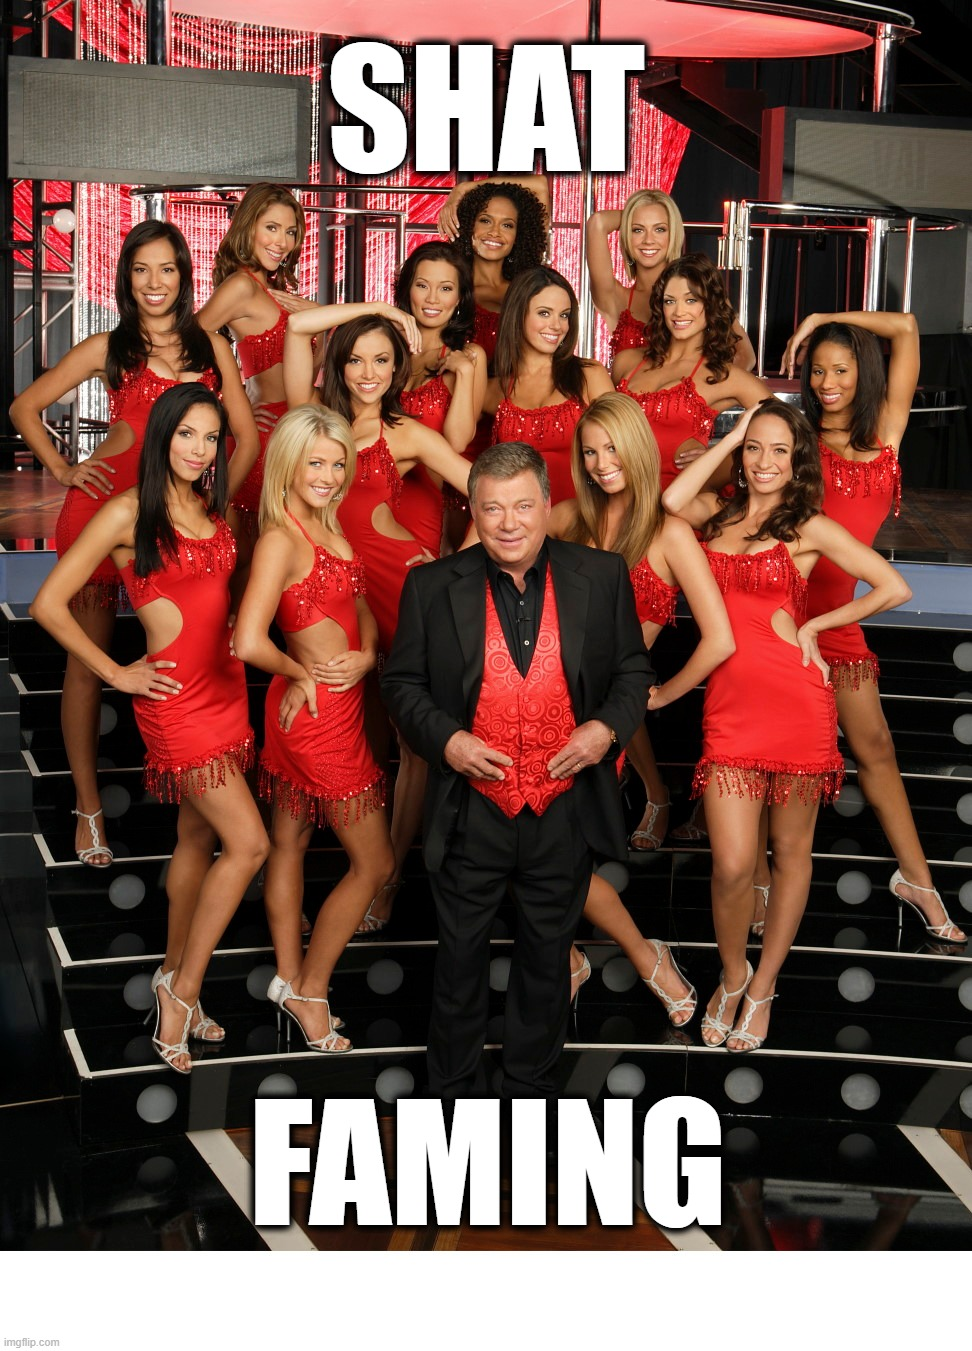 SHAT FAMING | image tagged in shatner,captain kirk,girls,fame,pimp | made w/ Imgflip meme maker